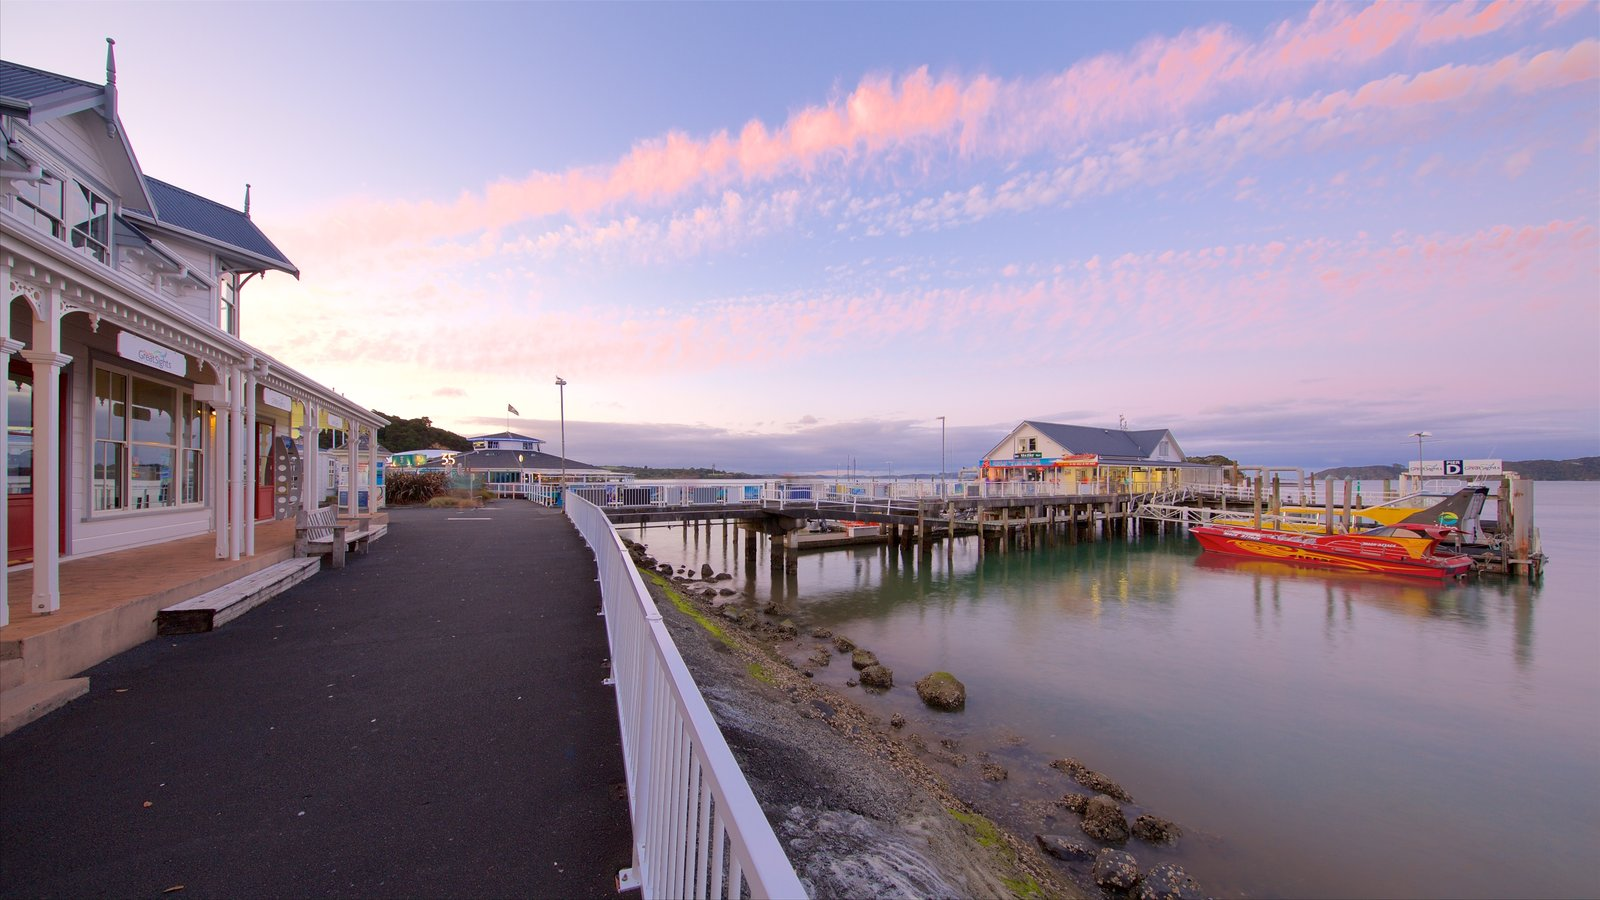 Paihia which includes a marina, a sunset and a bay or harbor